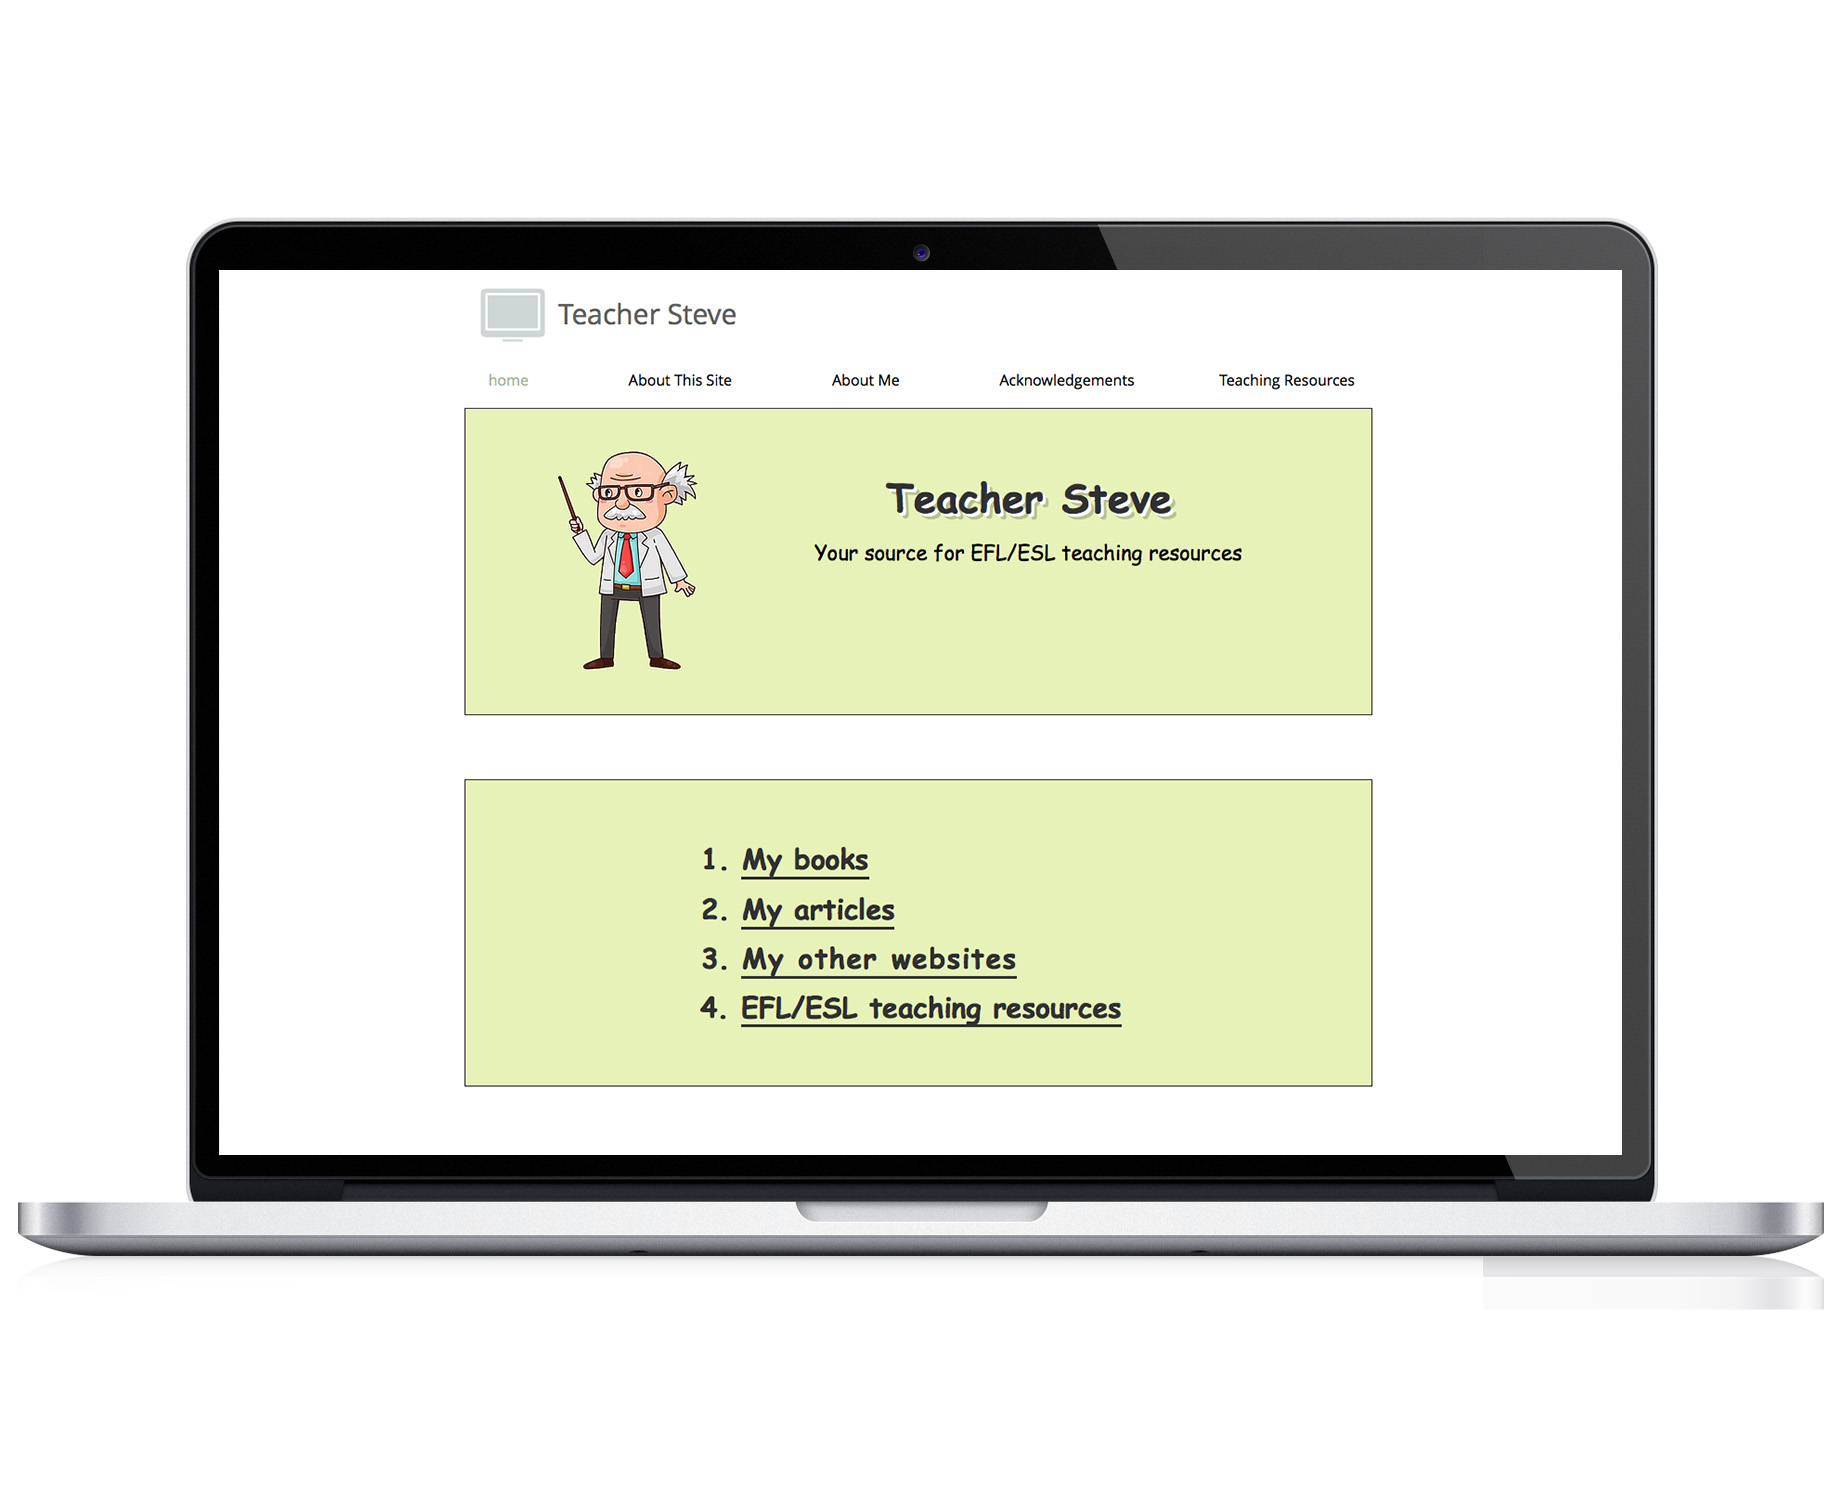 teacher-steve-website.jpg